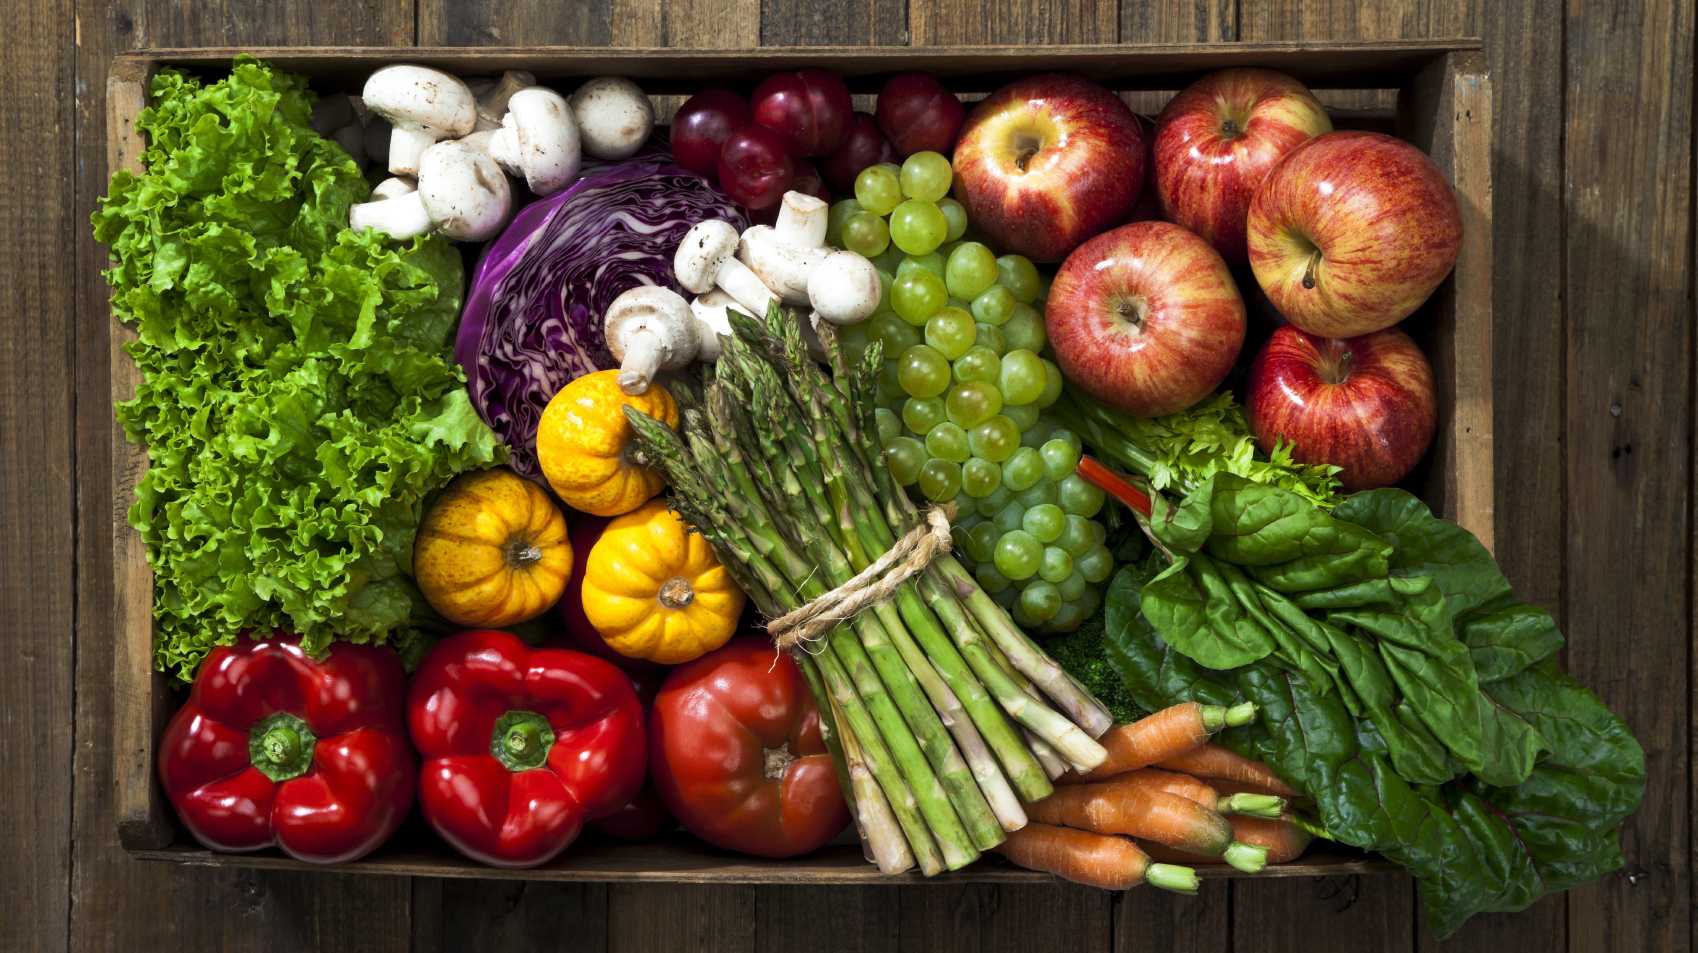 Eat Plants And Prosper: For Longevity, Go Easy On The Meat, Study Says